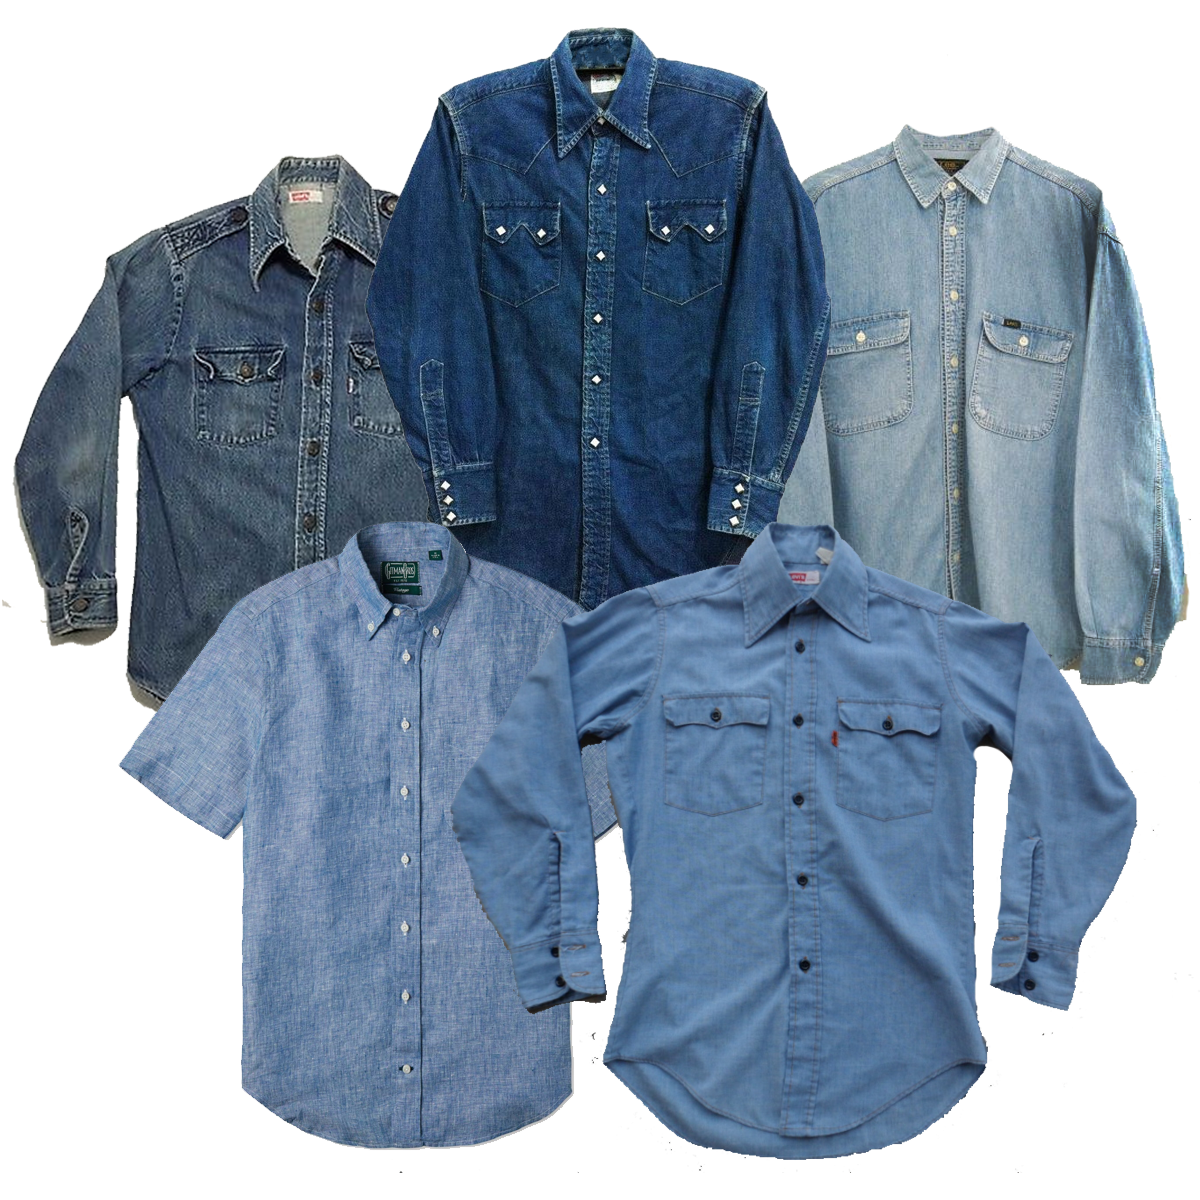 Vintage Wholesale Denim Chambray Shirts